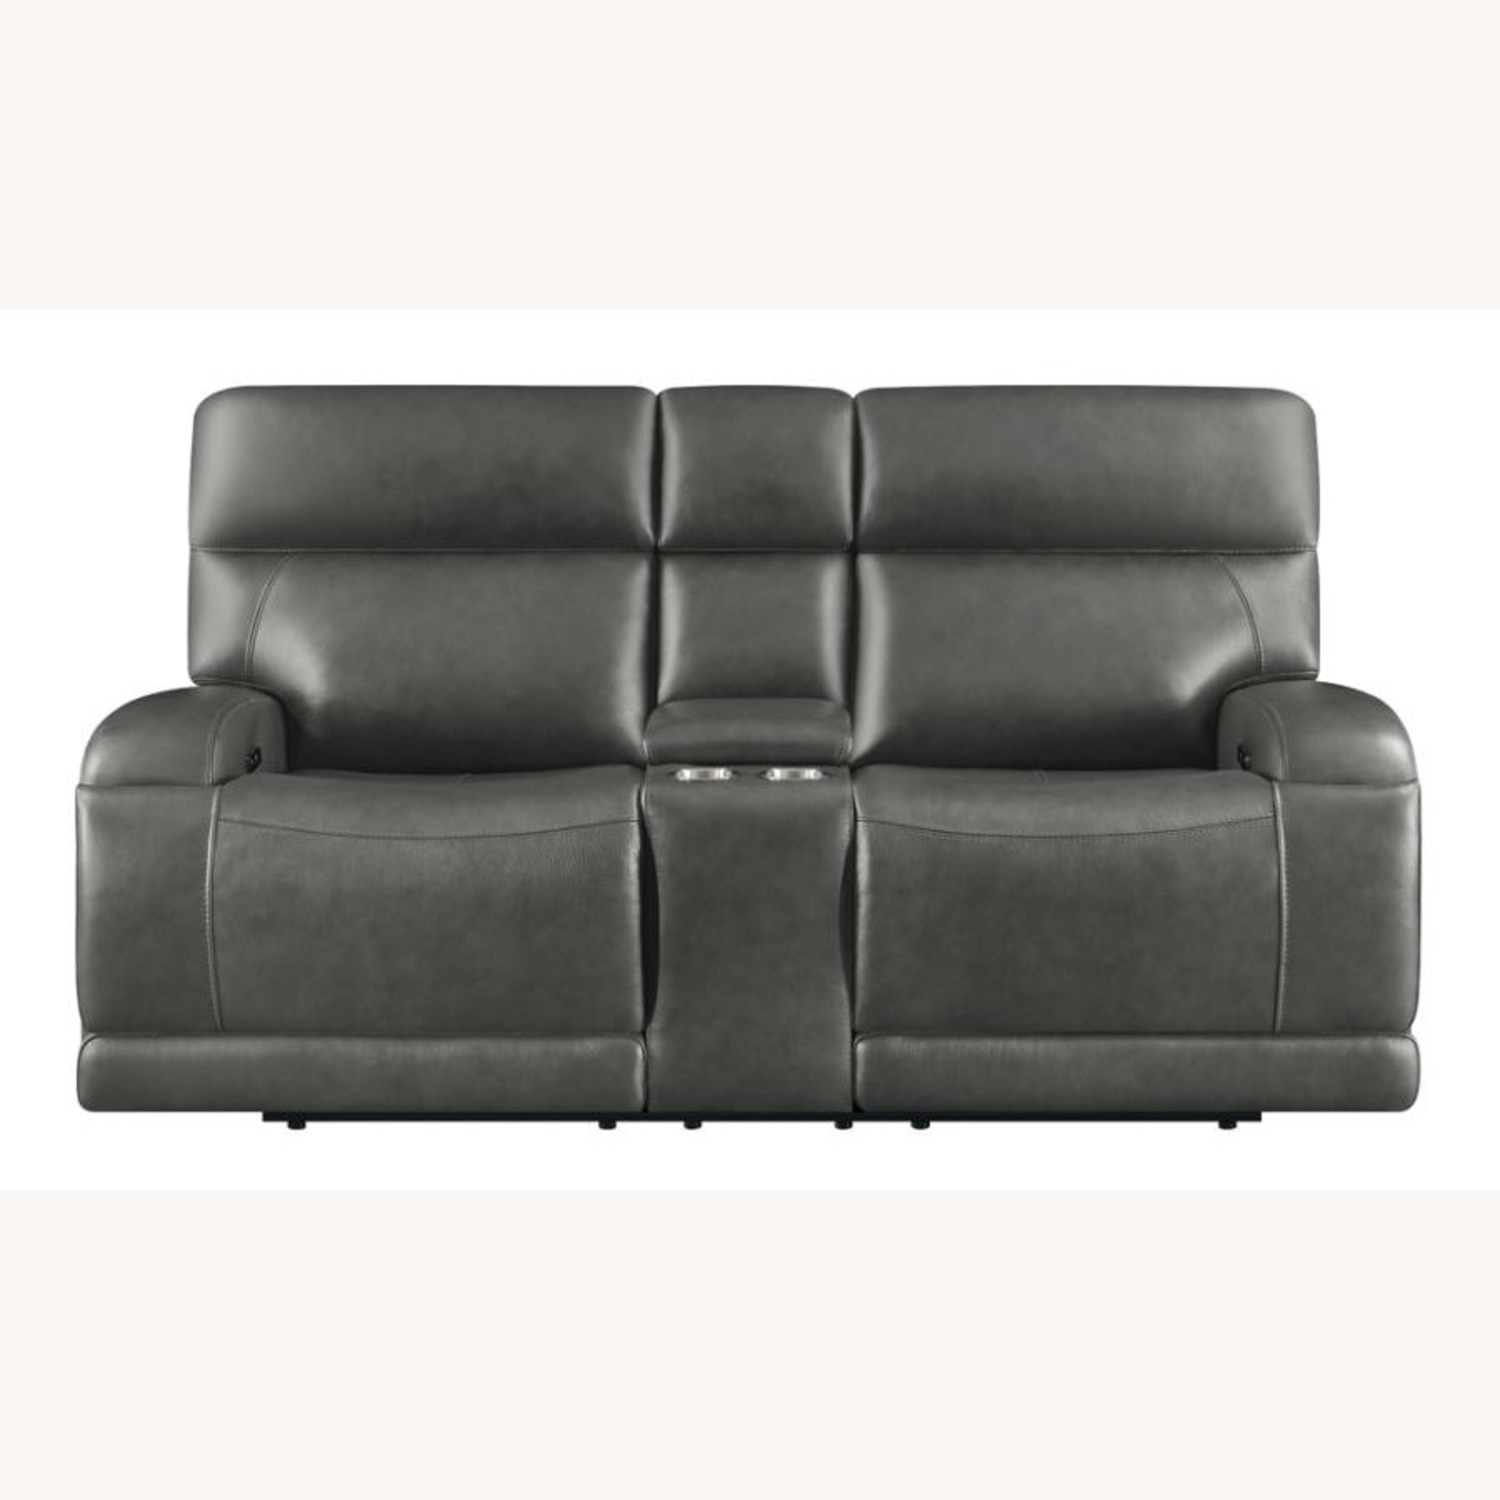 Power Loveseat W/ Console In Charcoal Leatherette - image-2